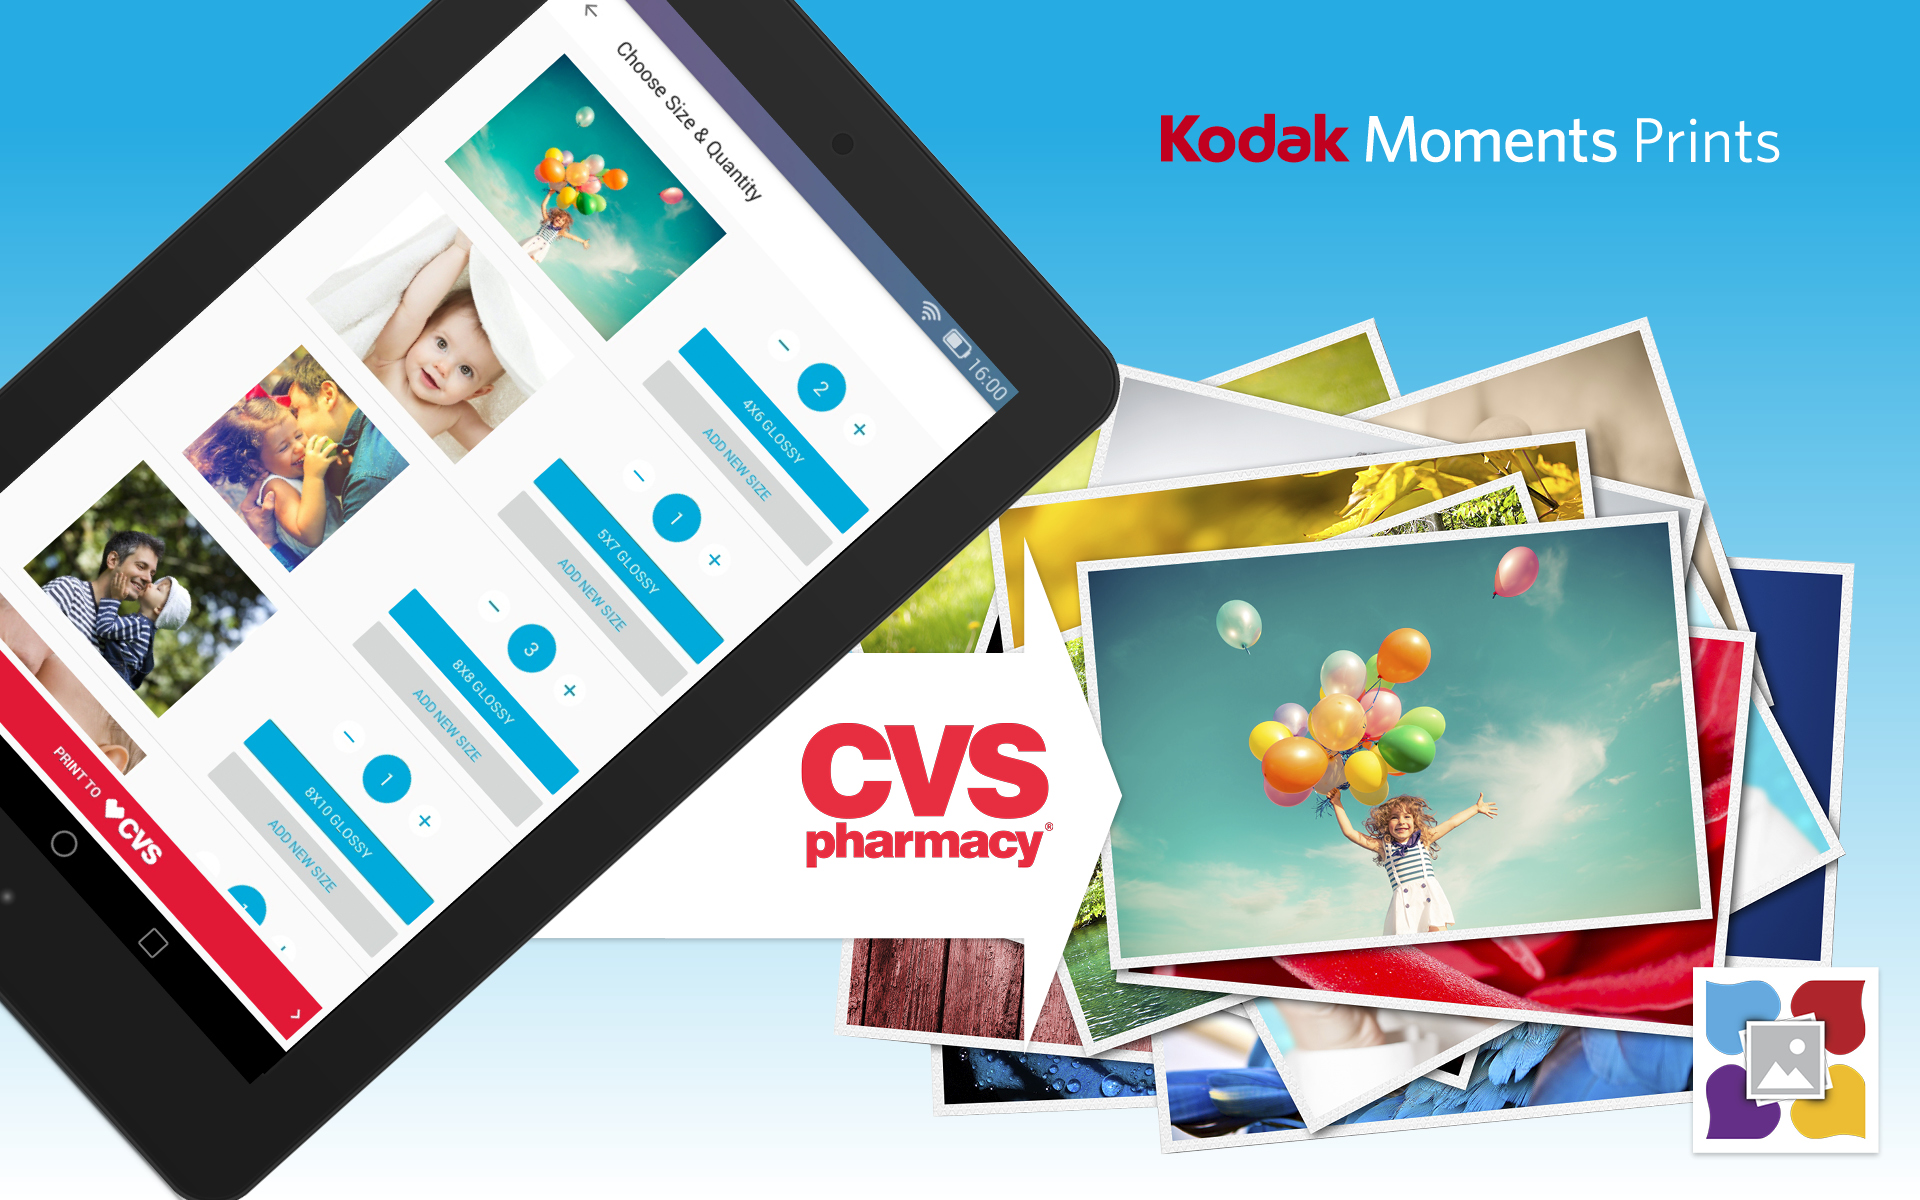 Photo Prints Now: CVS Photo Prints From Your Kindle, Fire Tablet & Phone